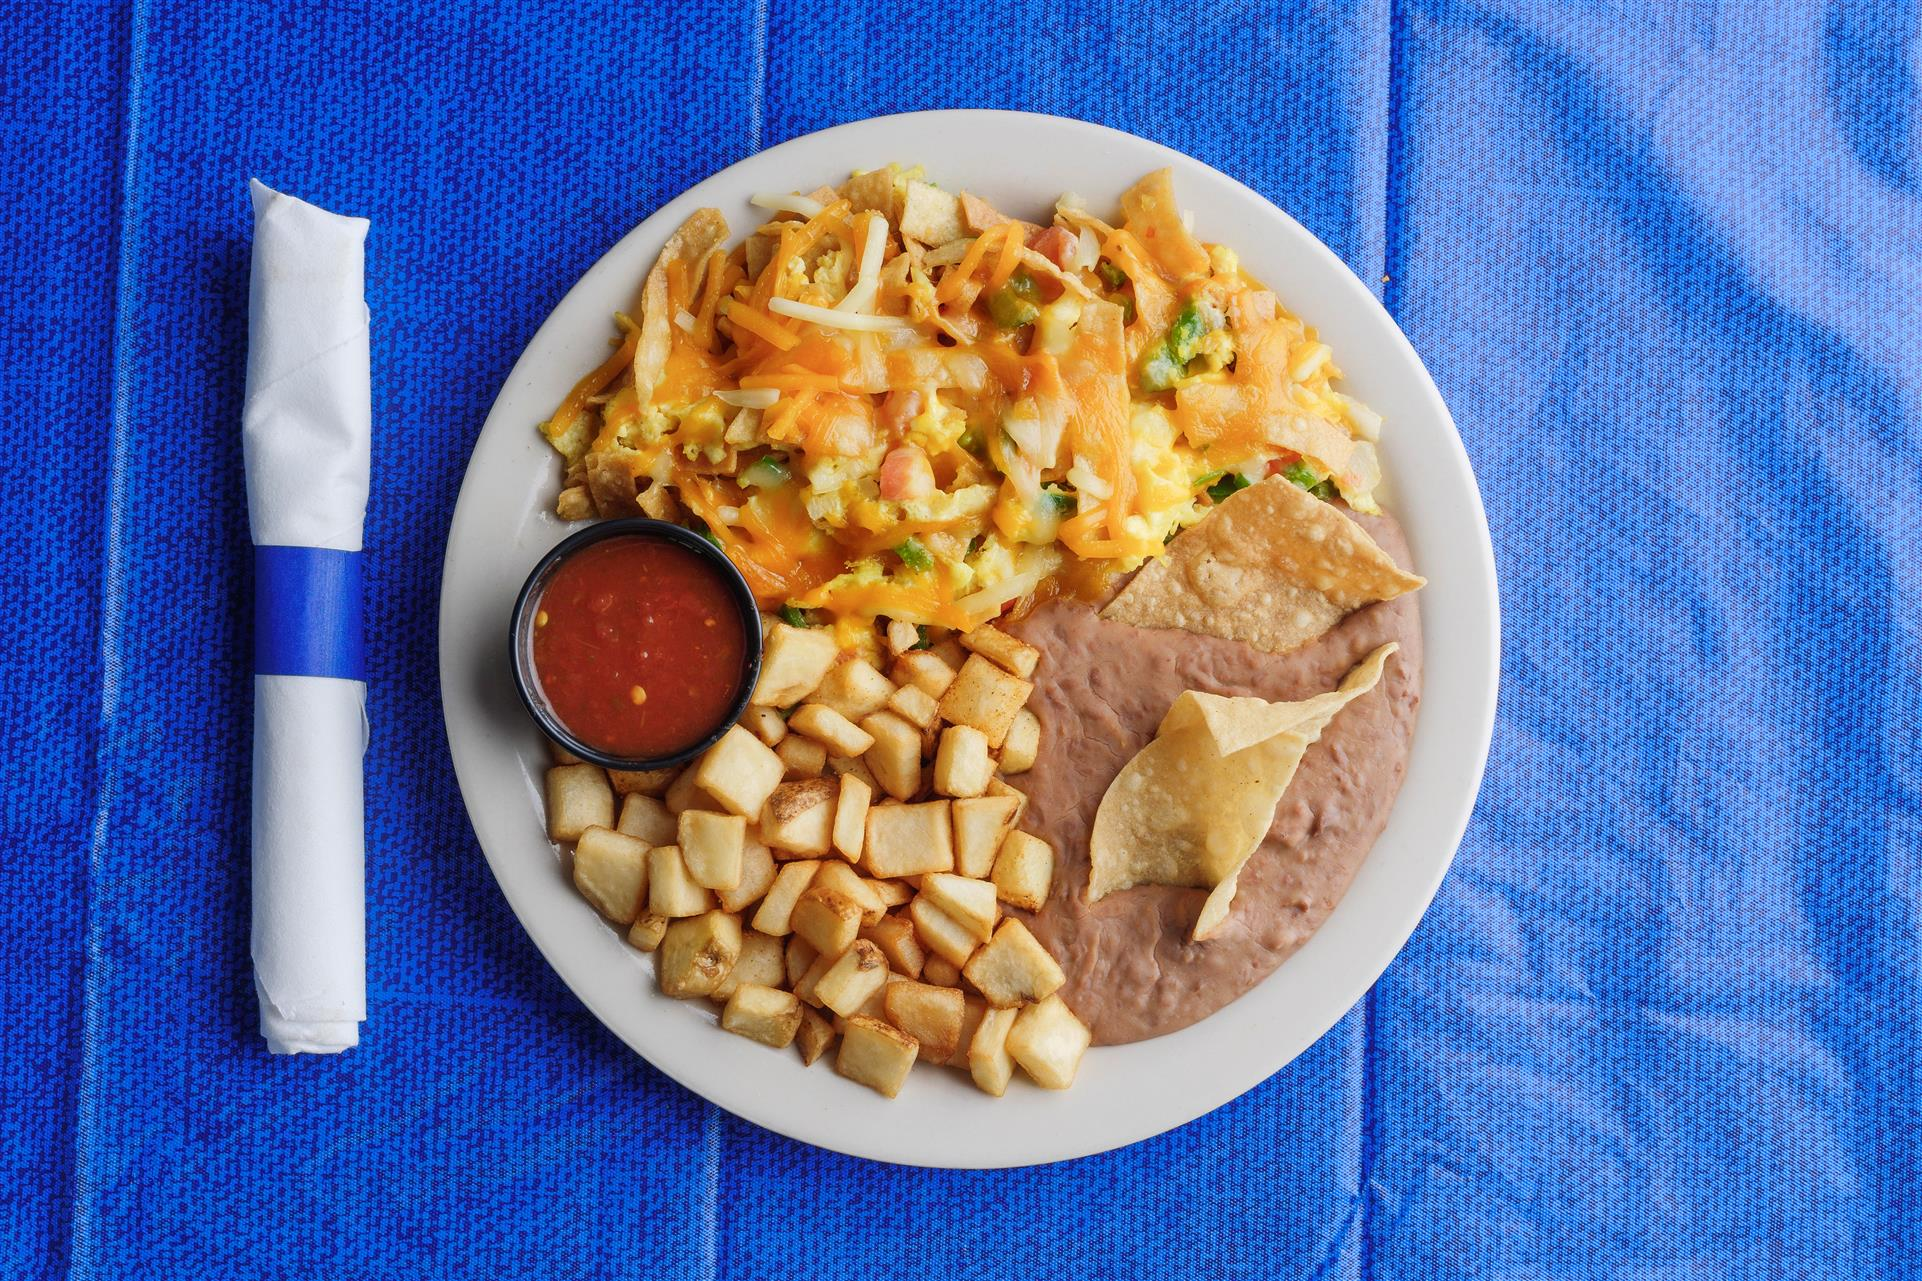 mexican-style breakfast scramble with sides of home fries, salsa, and refried beans with tortilla chips